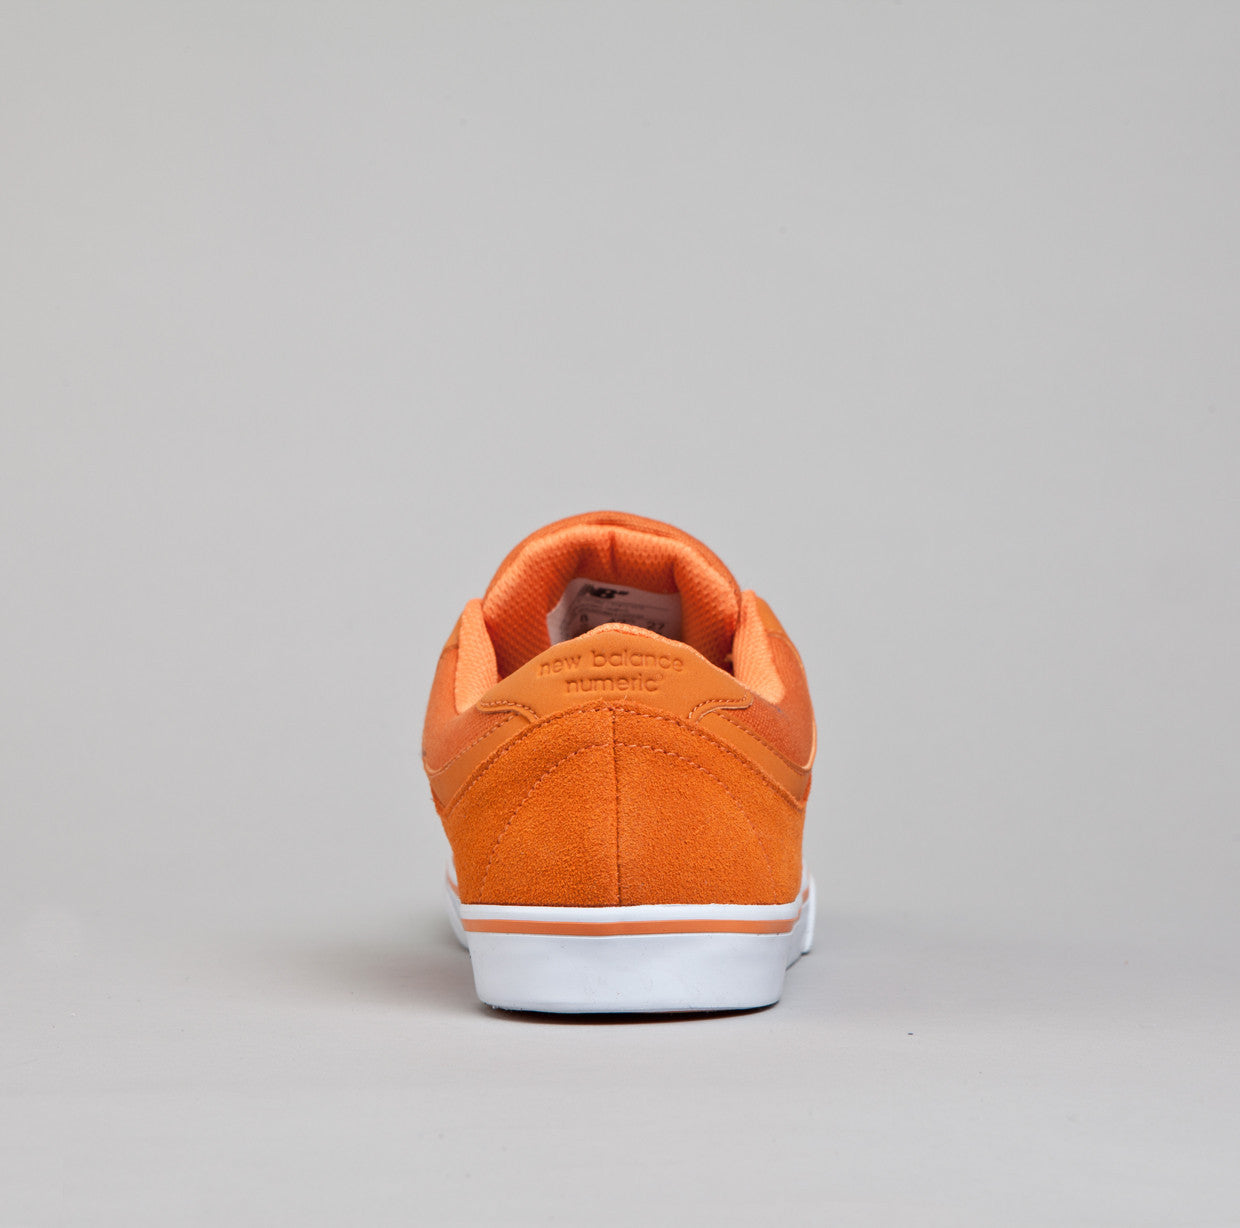 New Balance Numeric Quincy 254 Shoes - Burnt Orange / Tang Orange